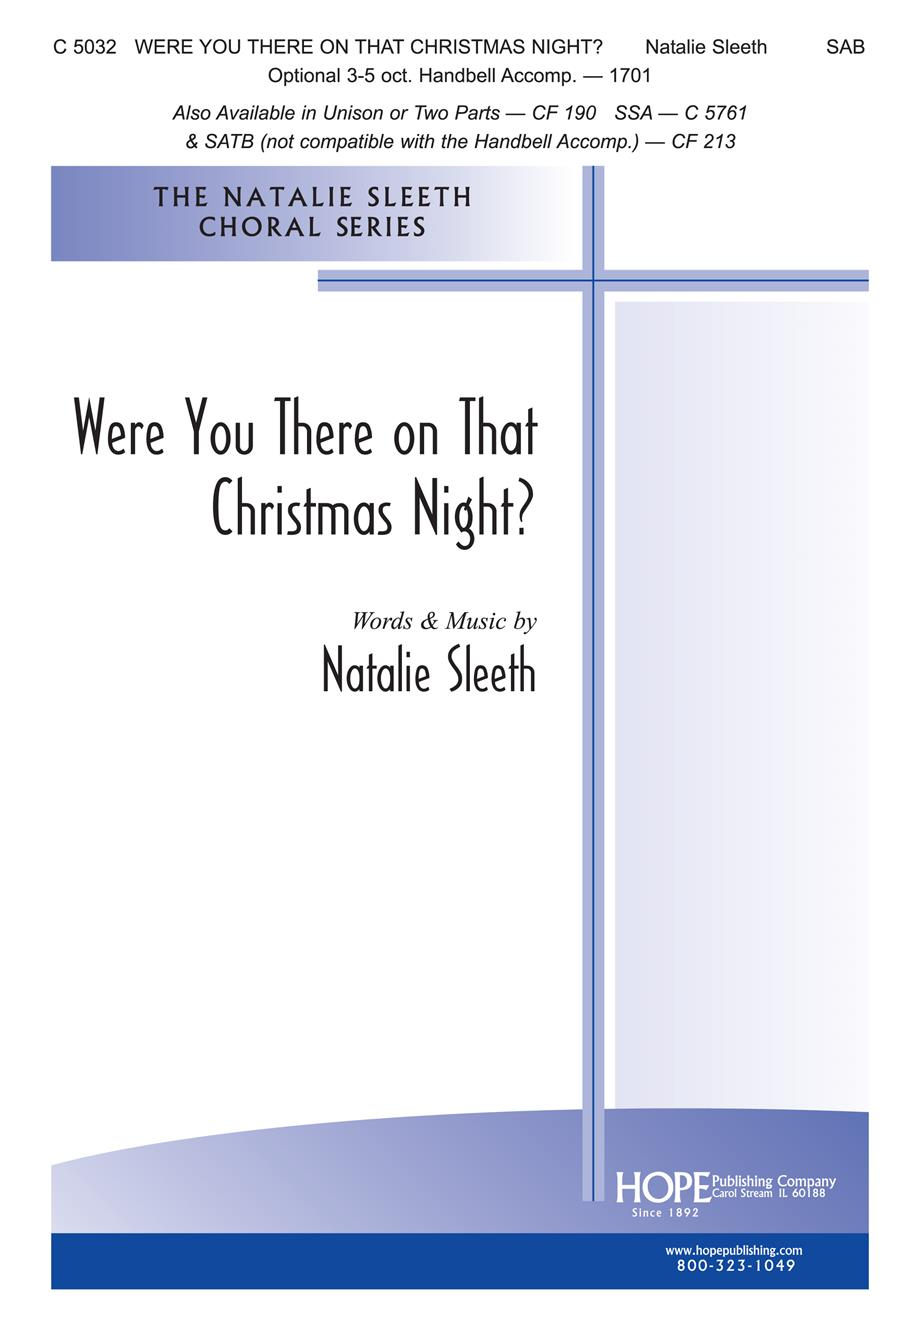 Were You There on That Christmas Night - SAB w-opt. Handbells Cover Image